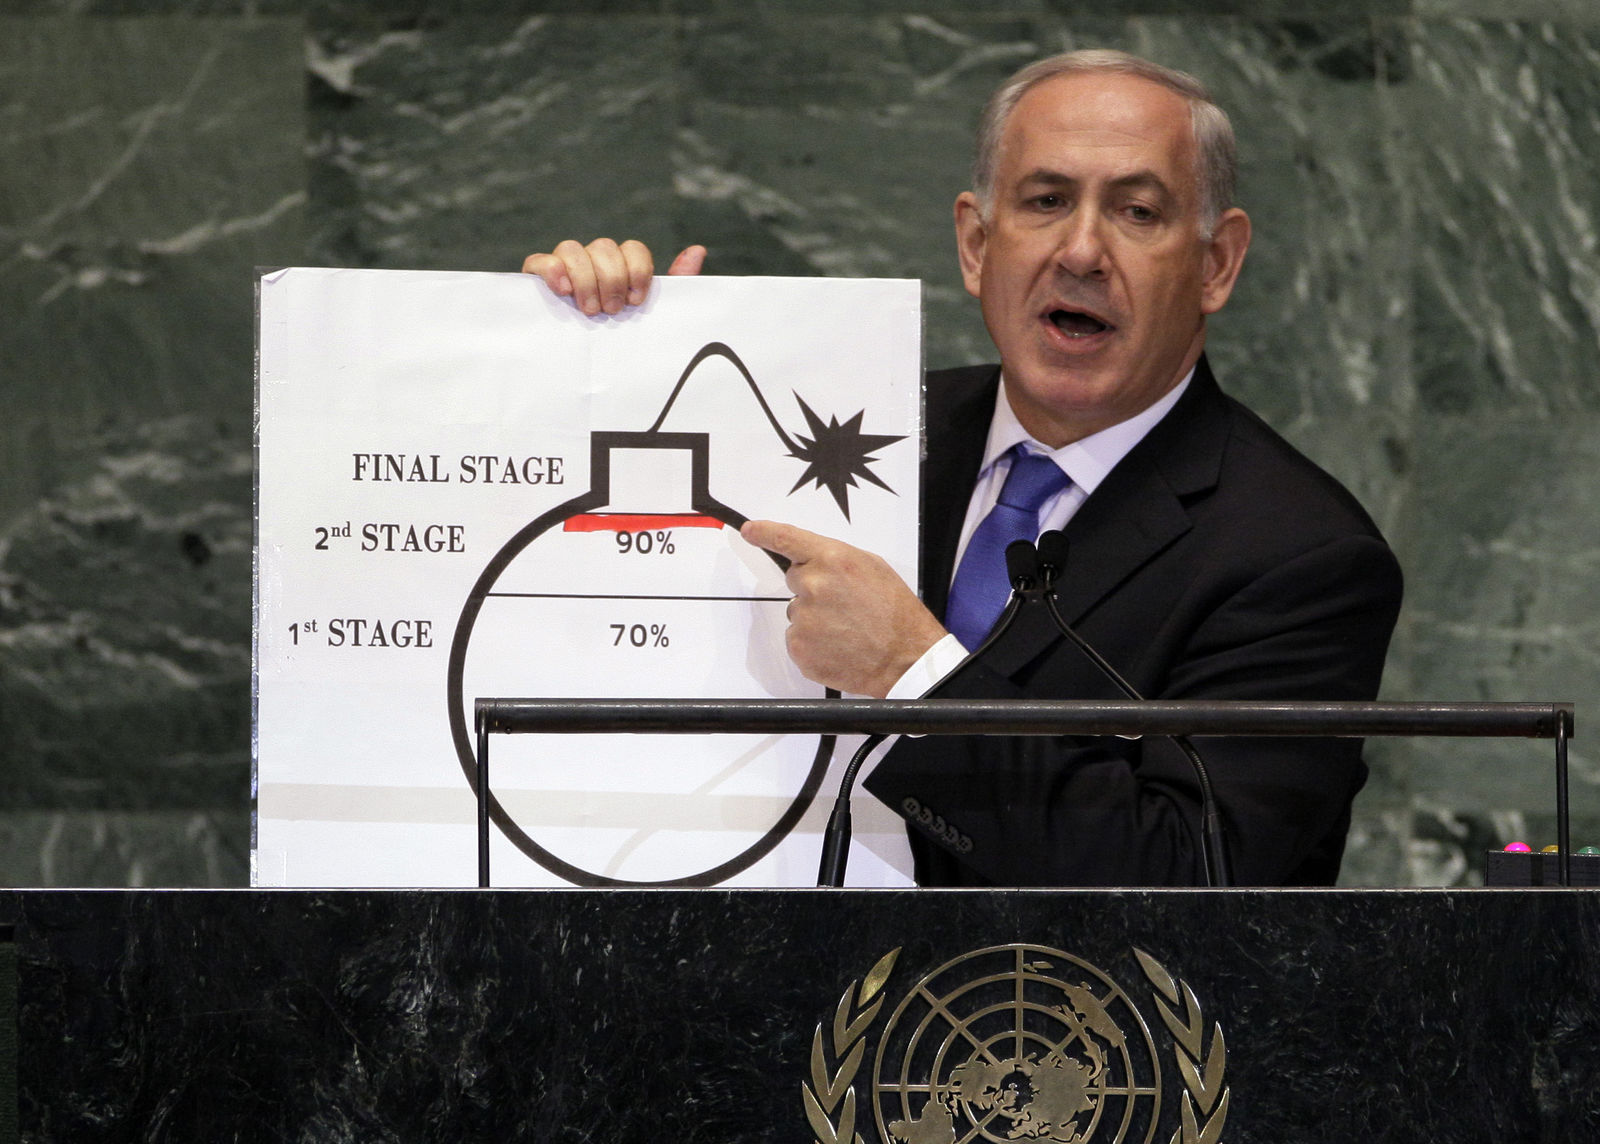 FILE - In this Sept. 27, 2012 file photo, Prime Minister Benjamin Netanyahu of Israel shows an illustration as he describes his concerns over Iran's nuclear ambitions during his address to the 67th session of the United Nations General Assembly at U.N. headquarters.(AP Photo/Richard Drew, File)